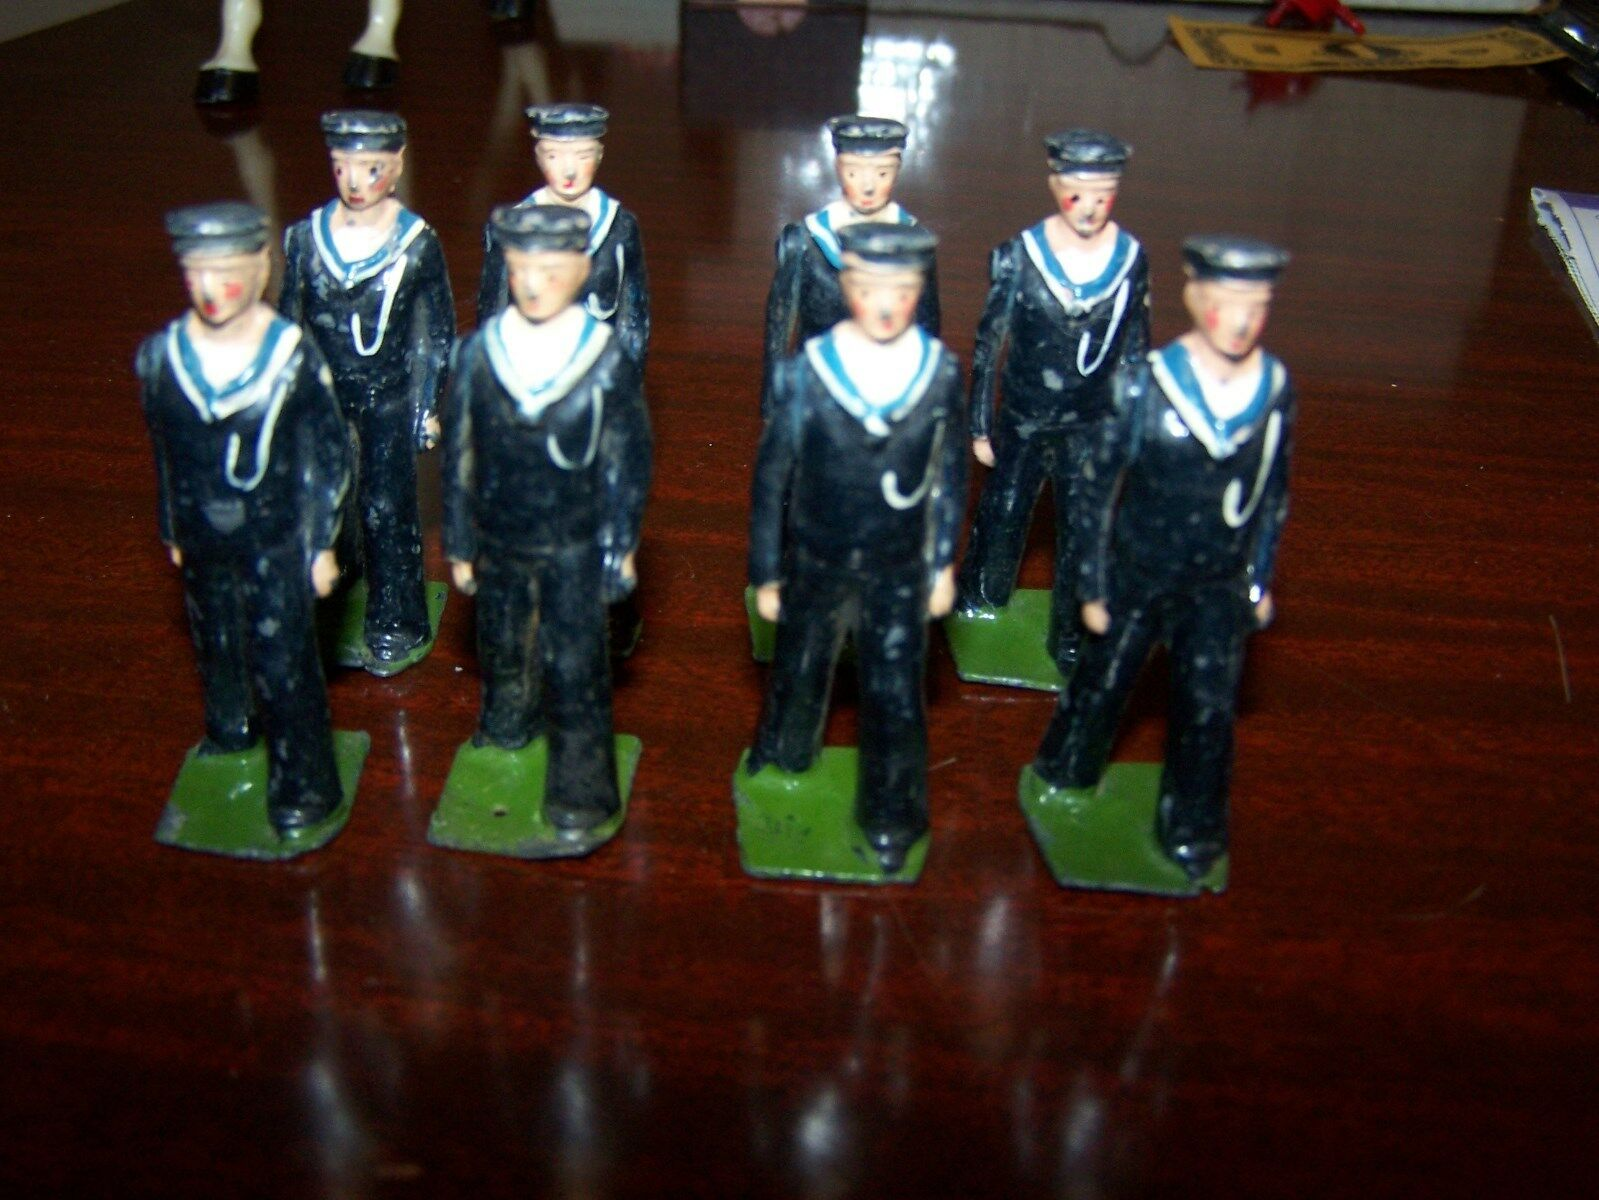 Britains Set 1510 British Sailors Regulation Dress (2 Sets, 8 each) C-6